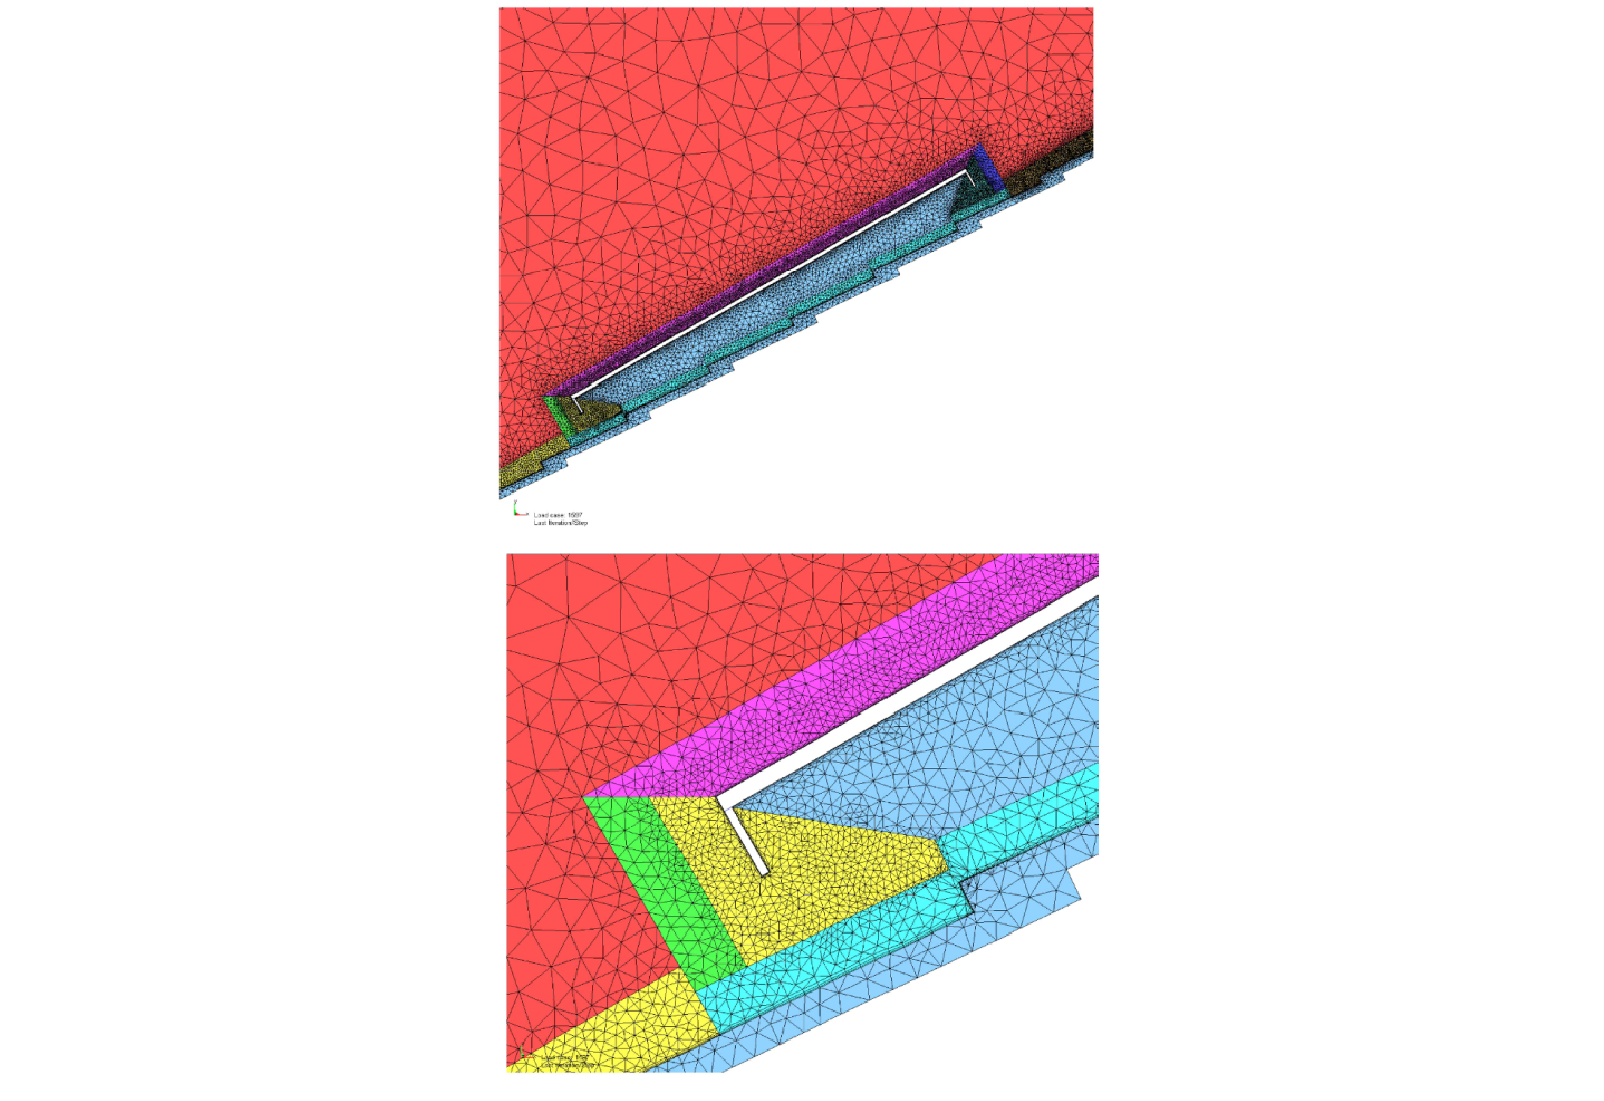 CFD meshing control used to capture the pressure loading over the roof and panel system